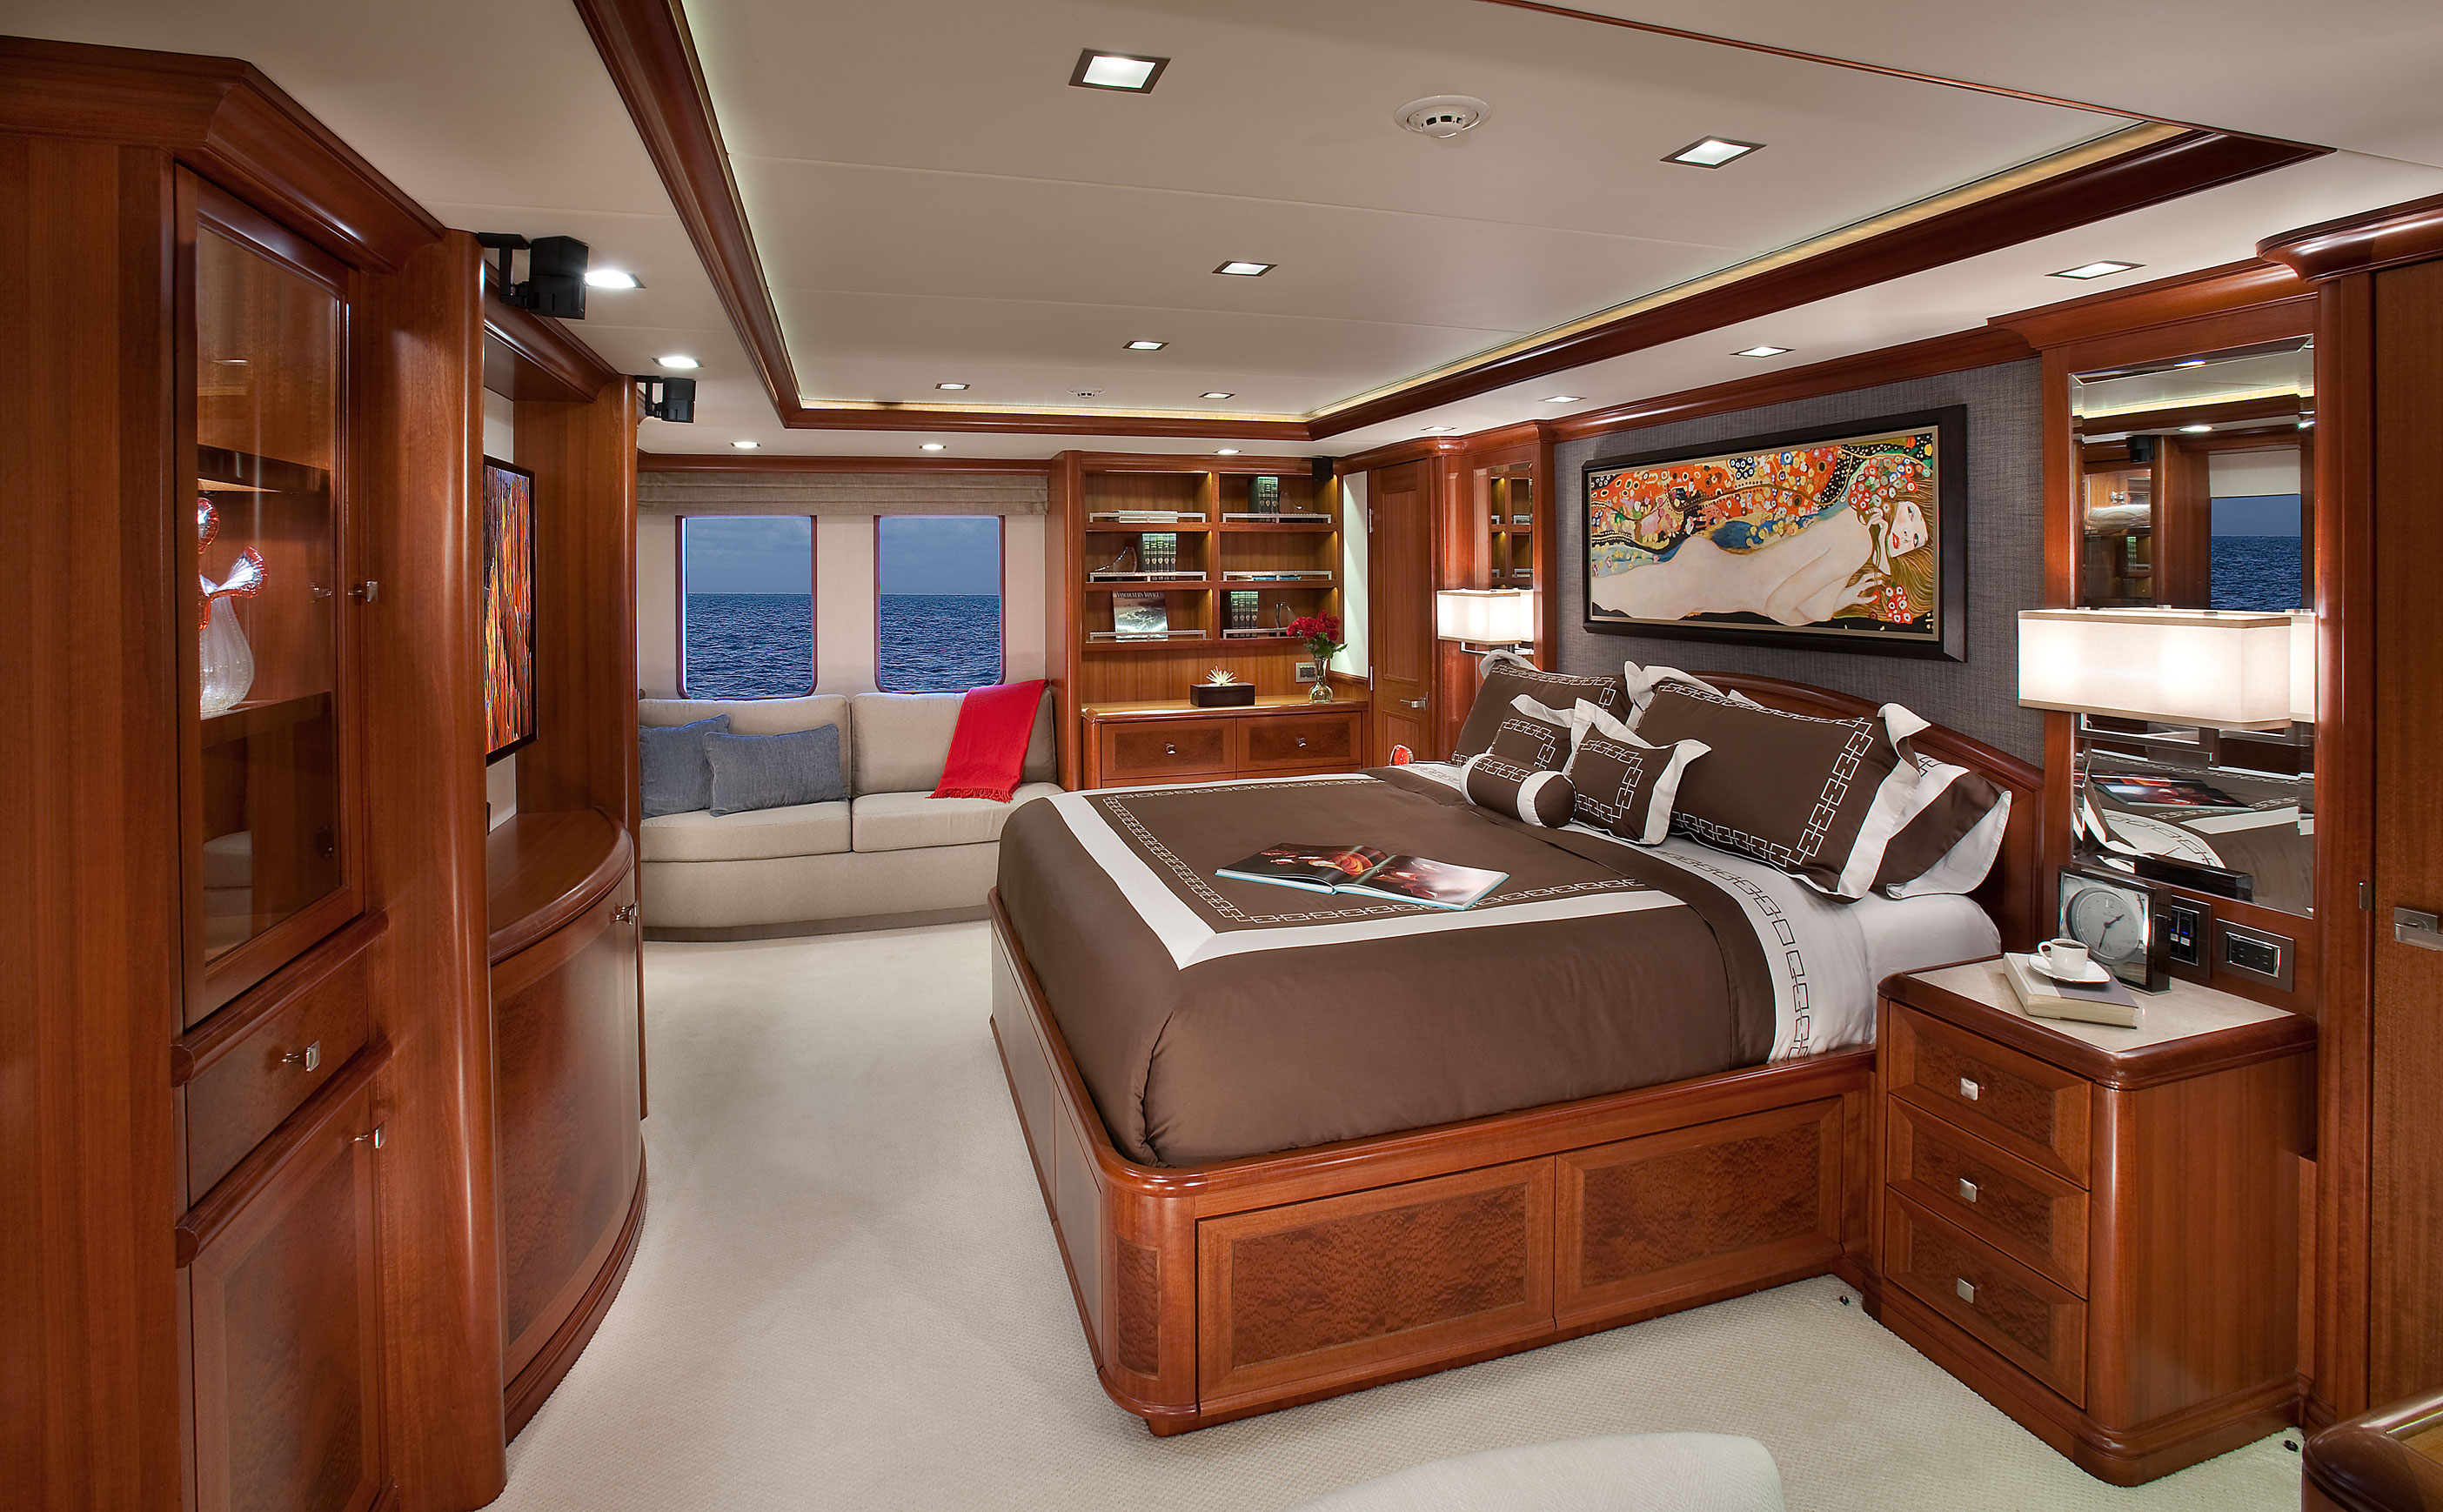 Aurora Yacht Owners Suite Yacht Charter Superyacht News